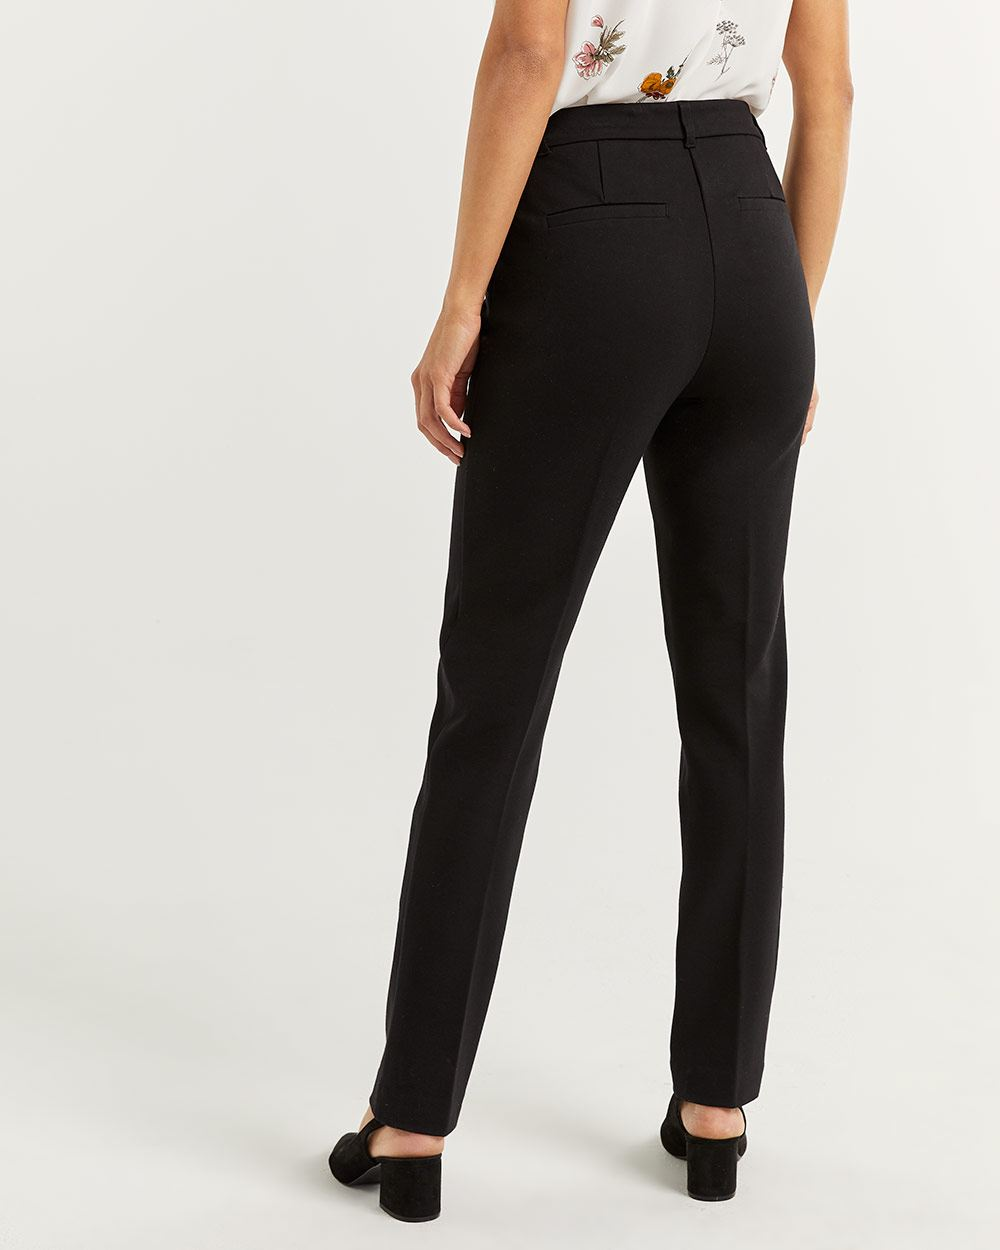 Black Straight Pull On Pants The Modern Stretch - Tall